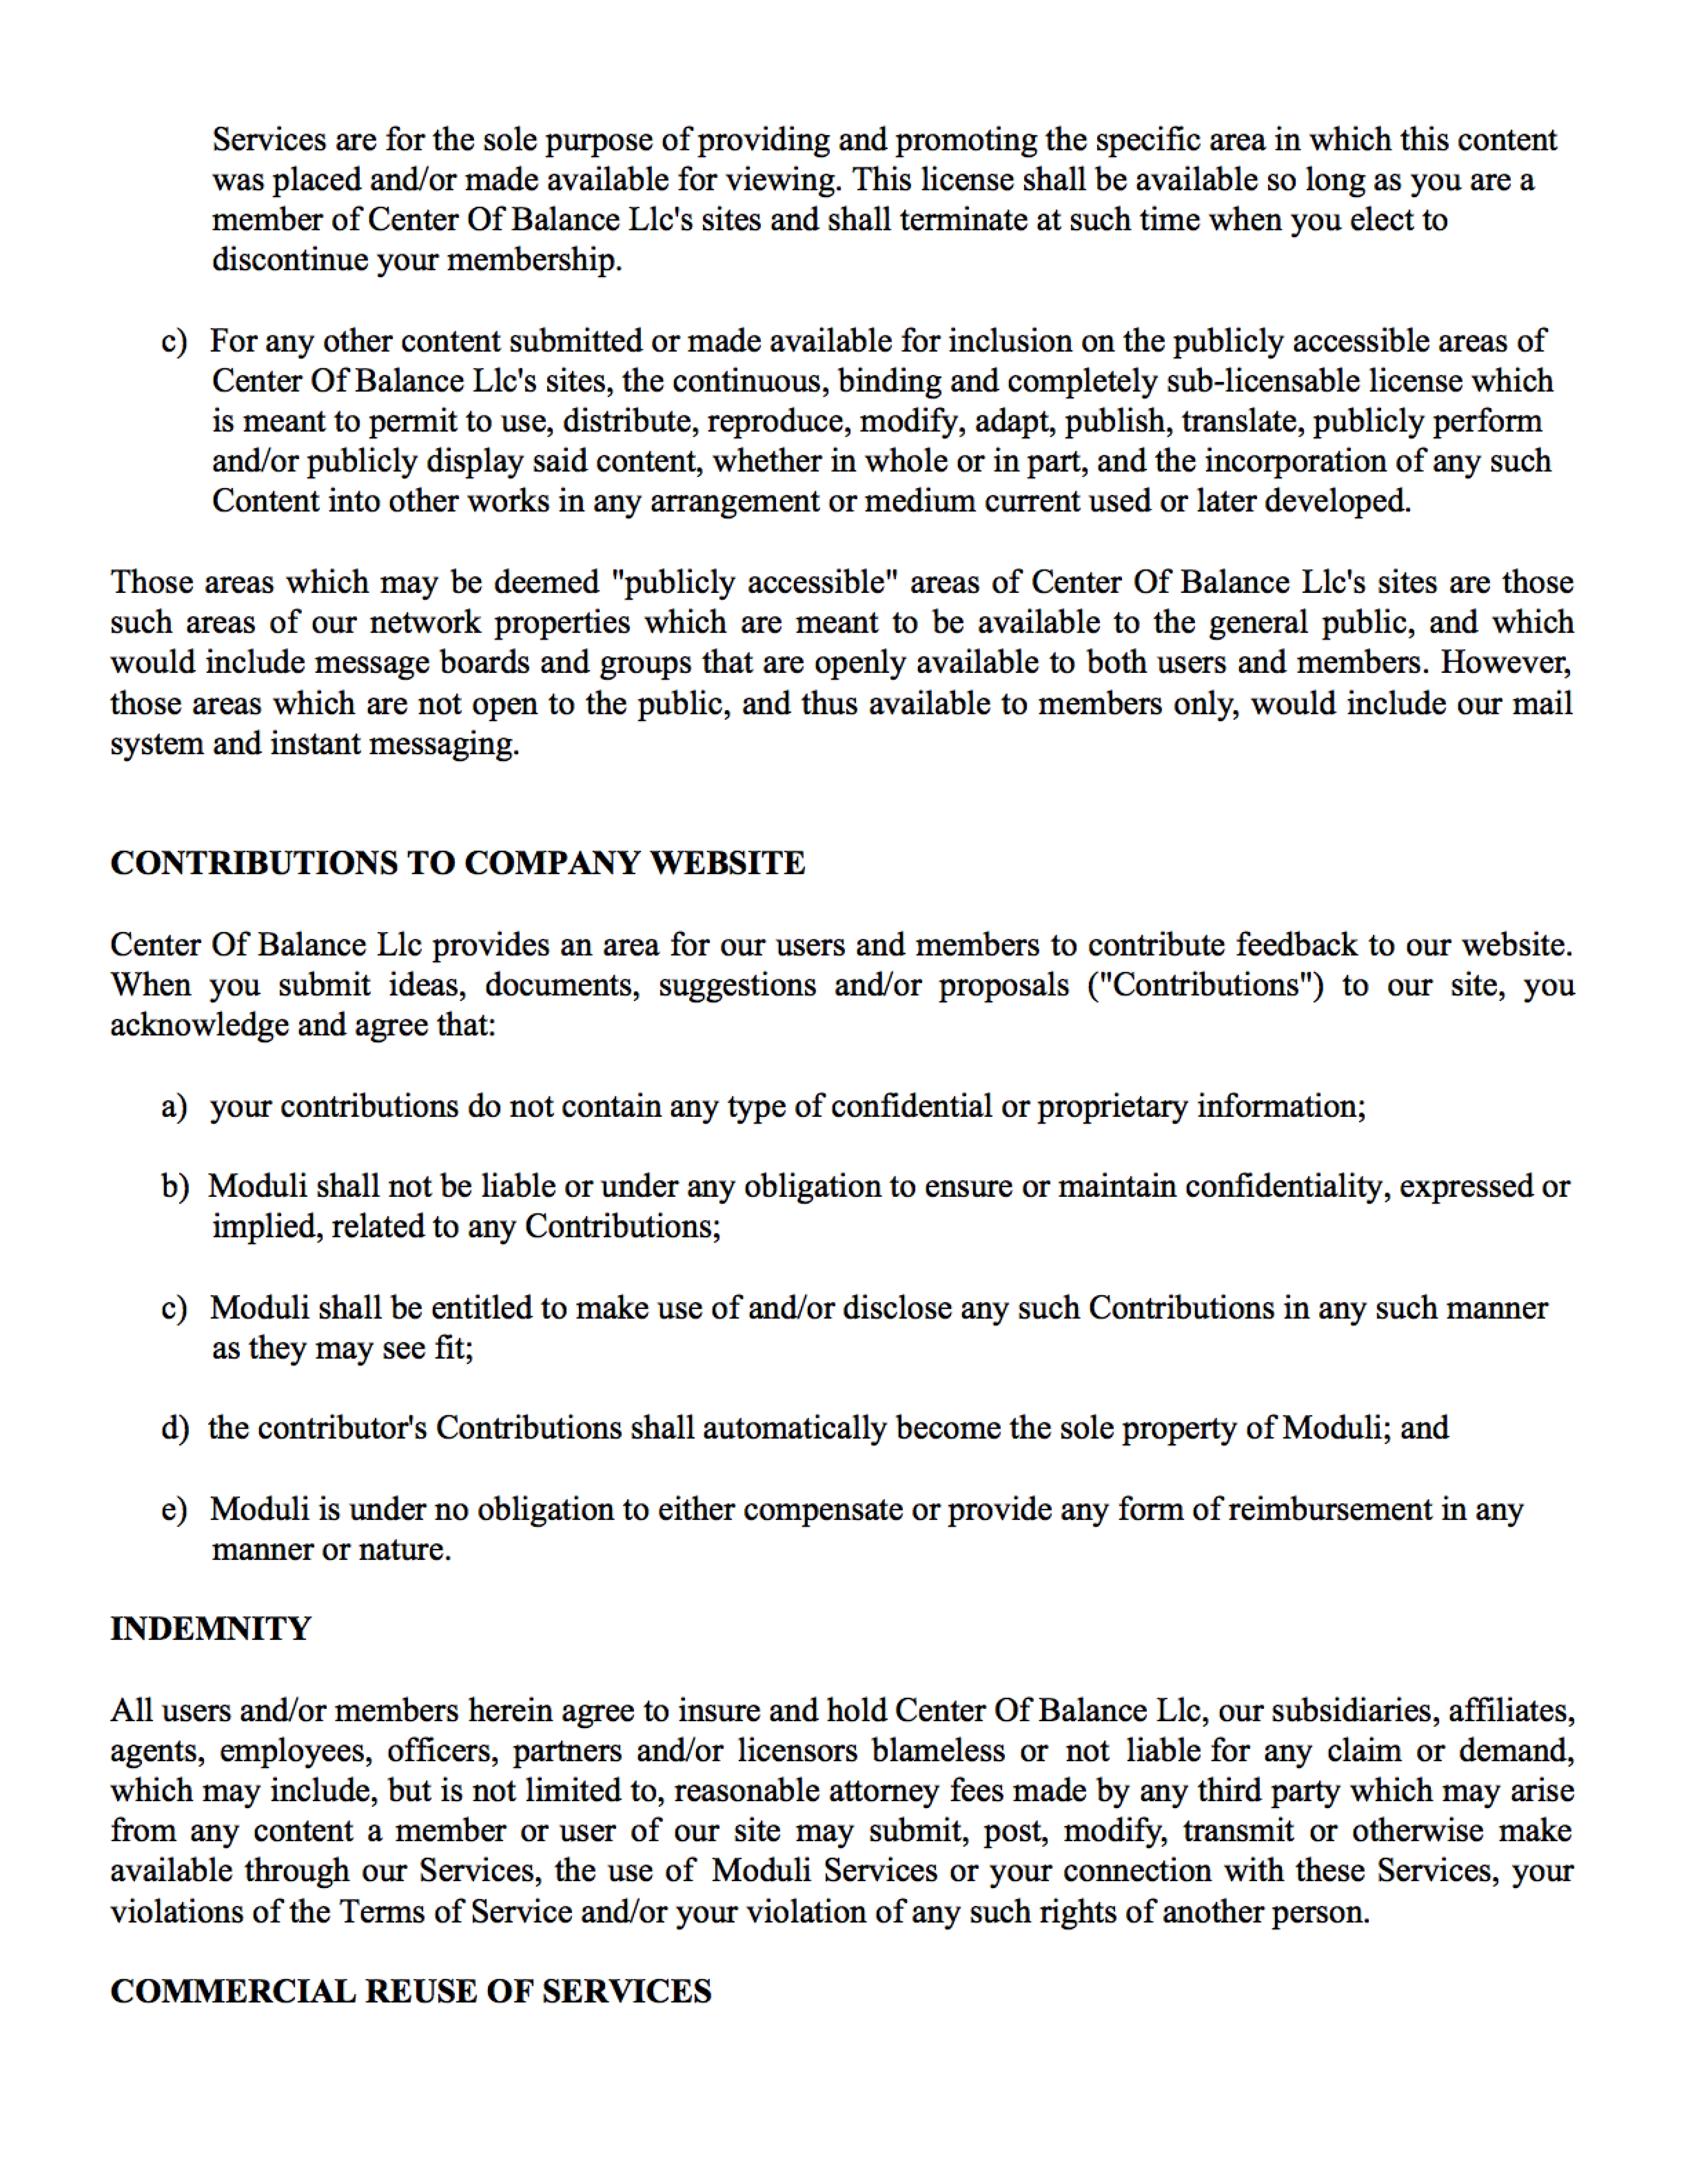 terms-and-conditions-b-page-06.png